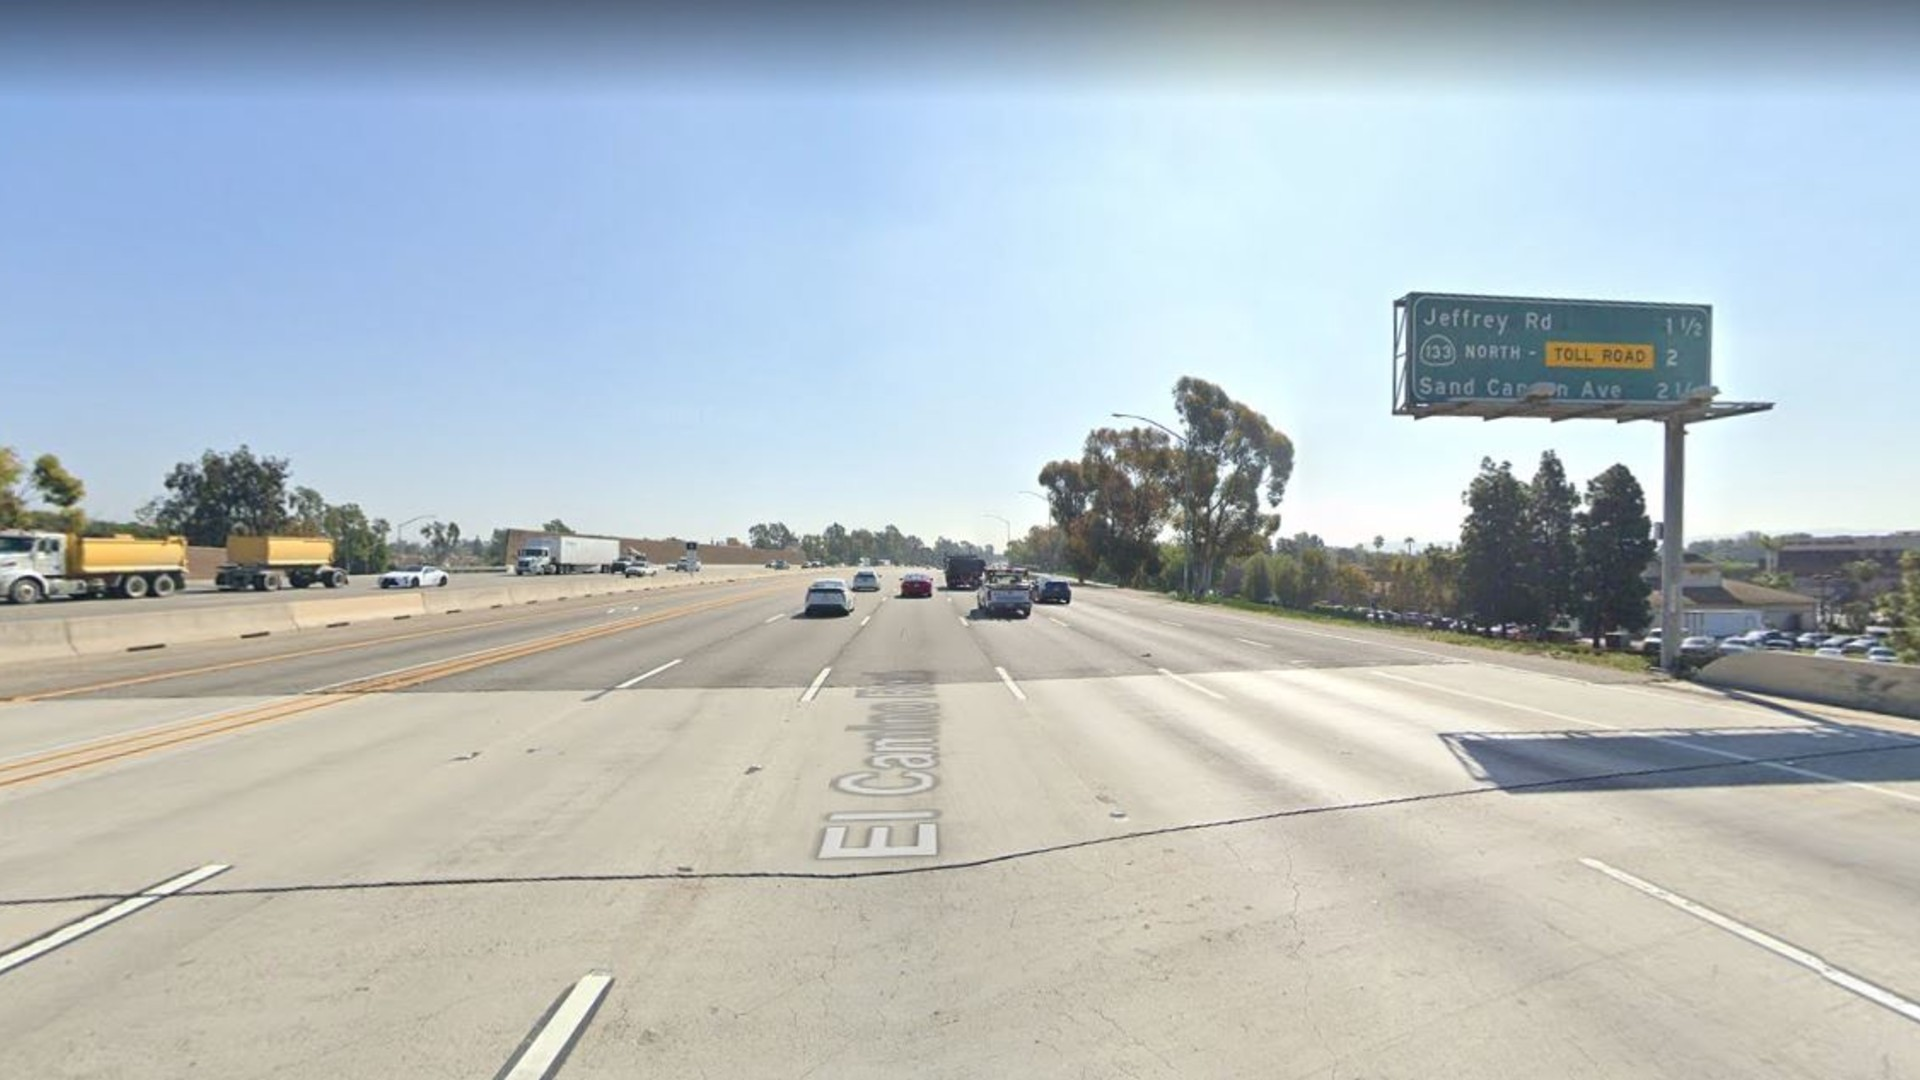 The southbound 5 Freeway, just south of Culver Drive, in Irvine, as seen in a Google Street View image.